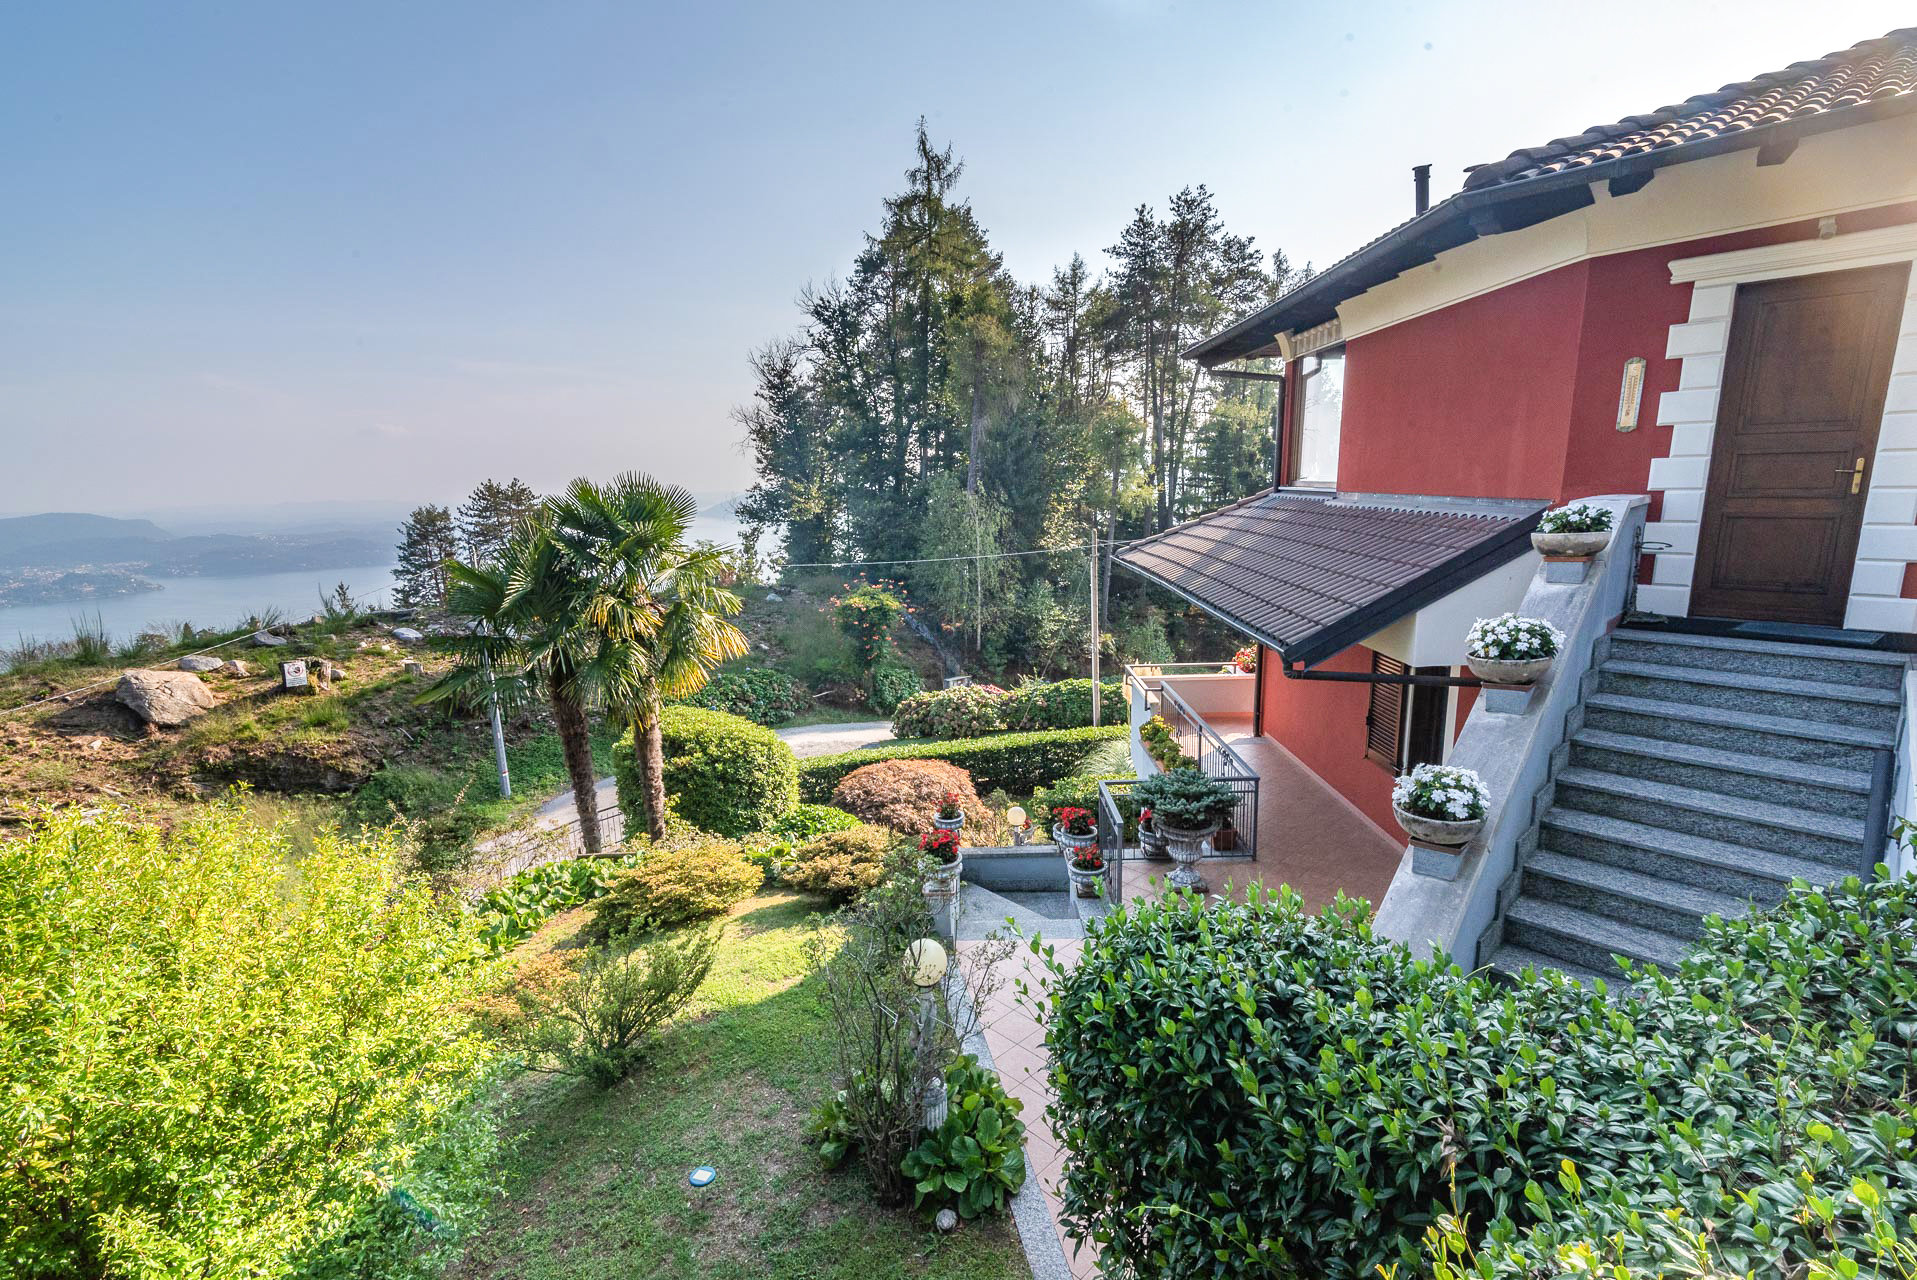 Villa for sale in Bee, with wonderful lake view - yard